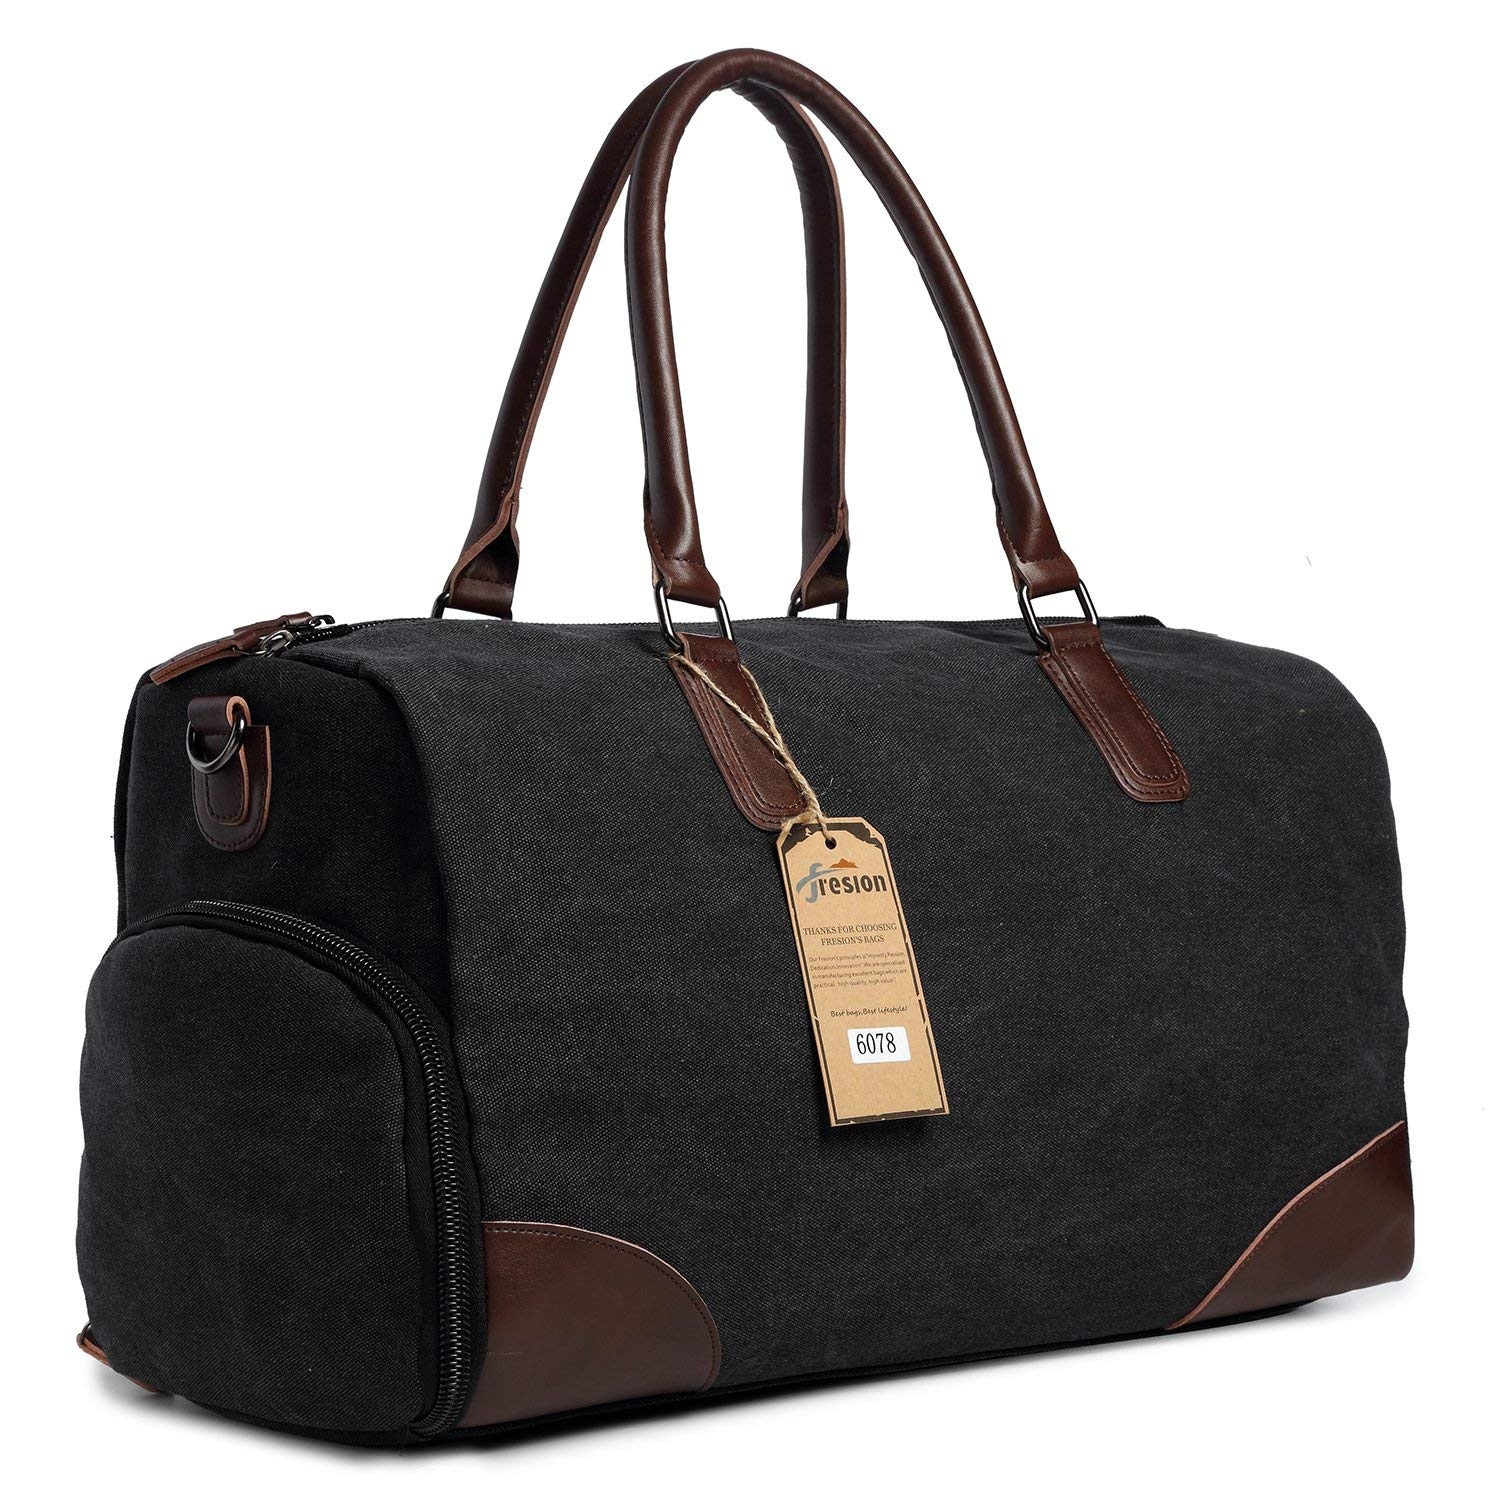 e53d7f35ff5b Travel Flight Bag for Men Women, Leather Canvas Holdall Tote Bags with  Laptop Compartment, Overnight Duffle Shoulder Bag Handbags by Fresion